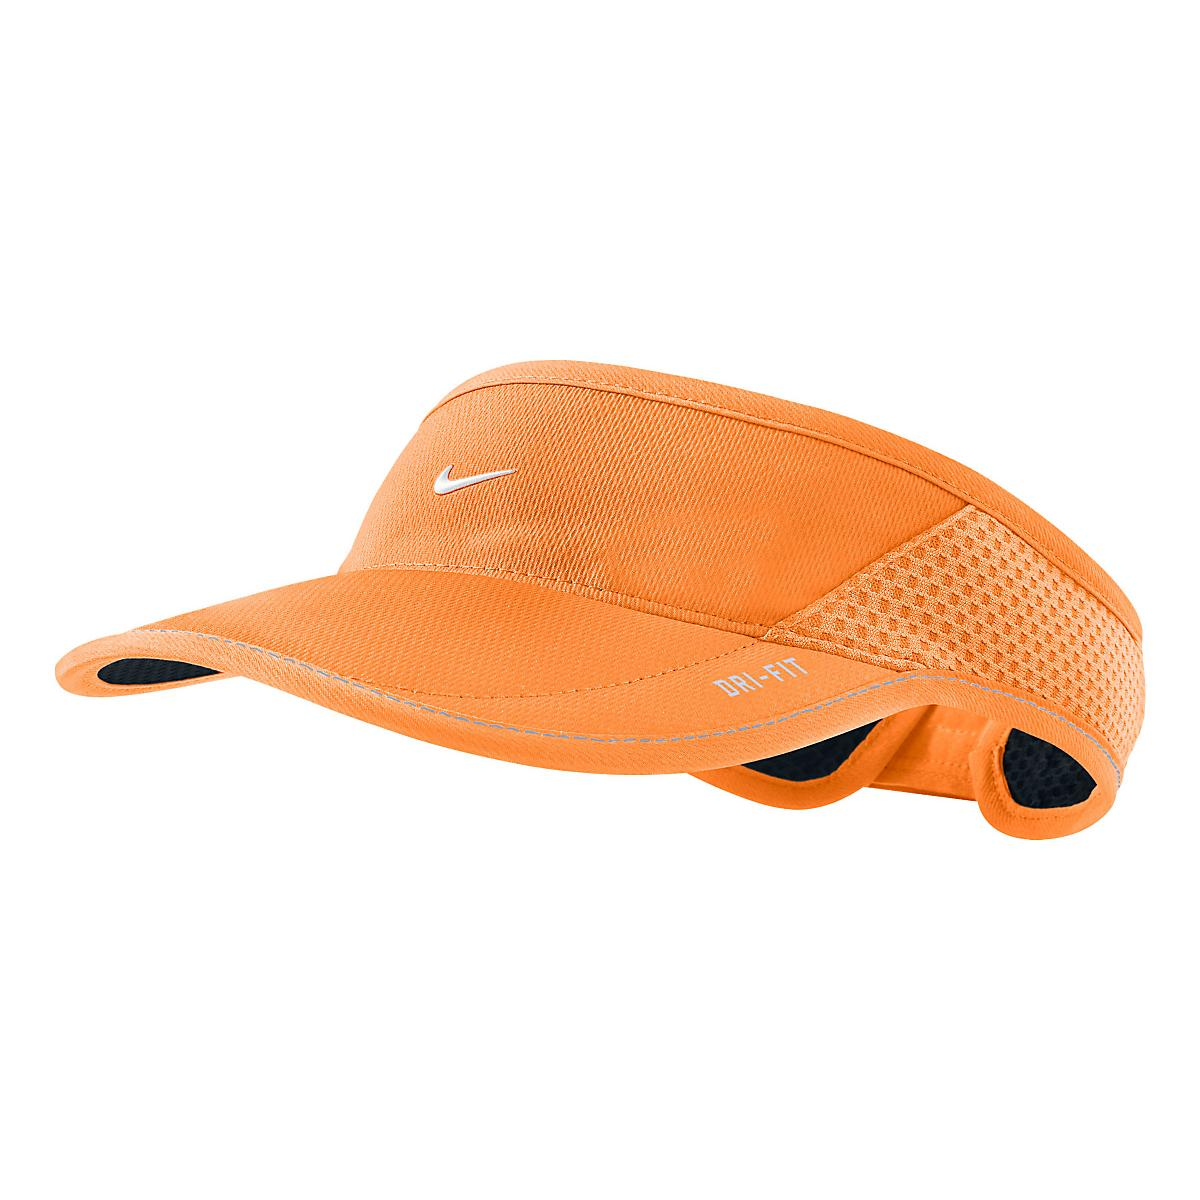 e377cd5f00a Nike Daybreak Visor Headwear at Road Runner Sports